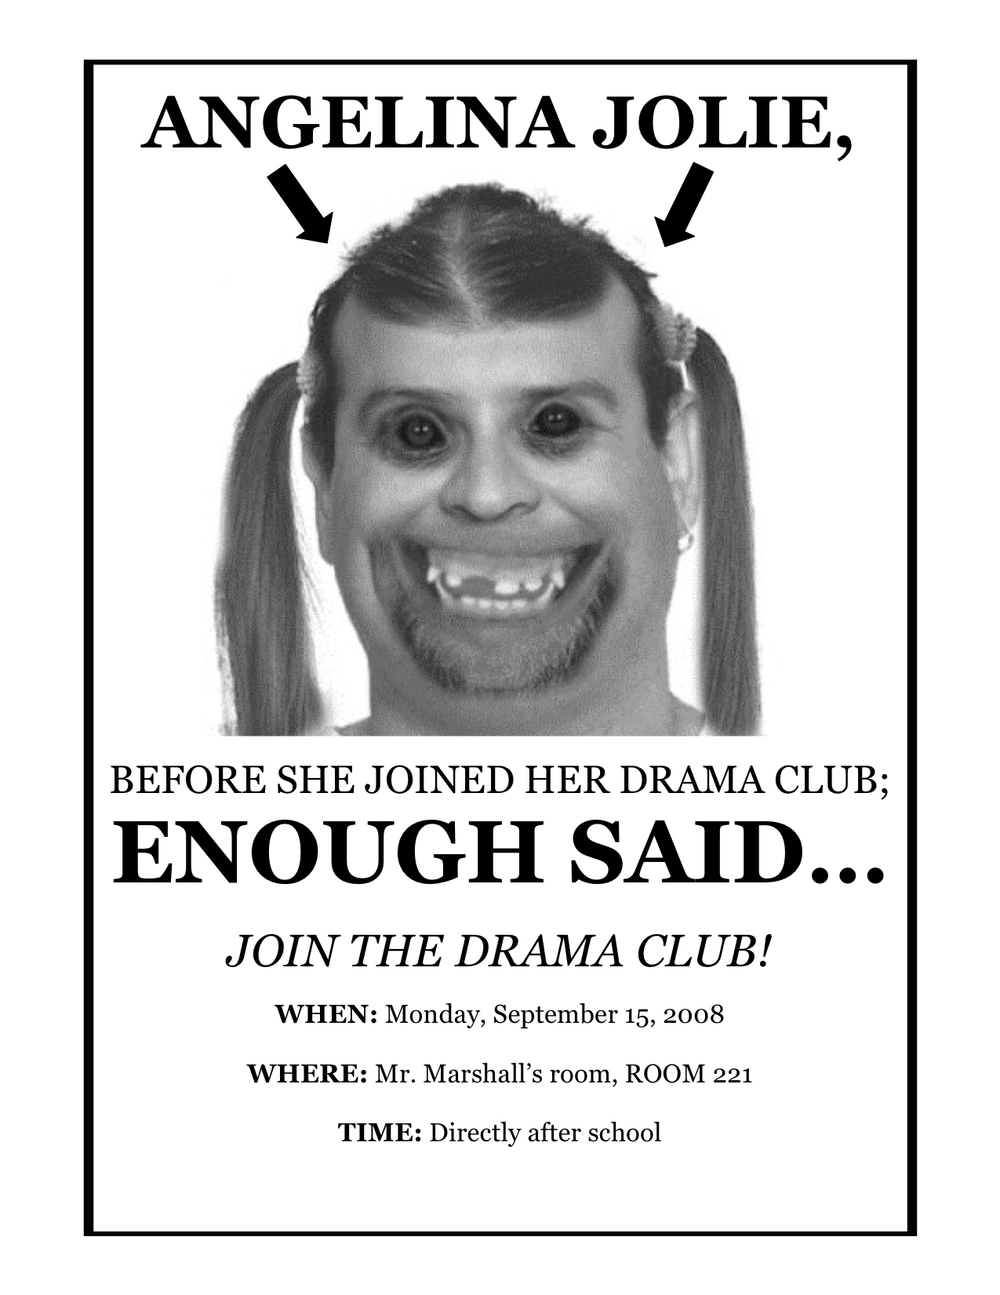 RECRUITMENT POSTER #2 FOR OUR FIRST EVER DRAMA CLUB